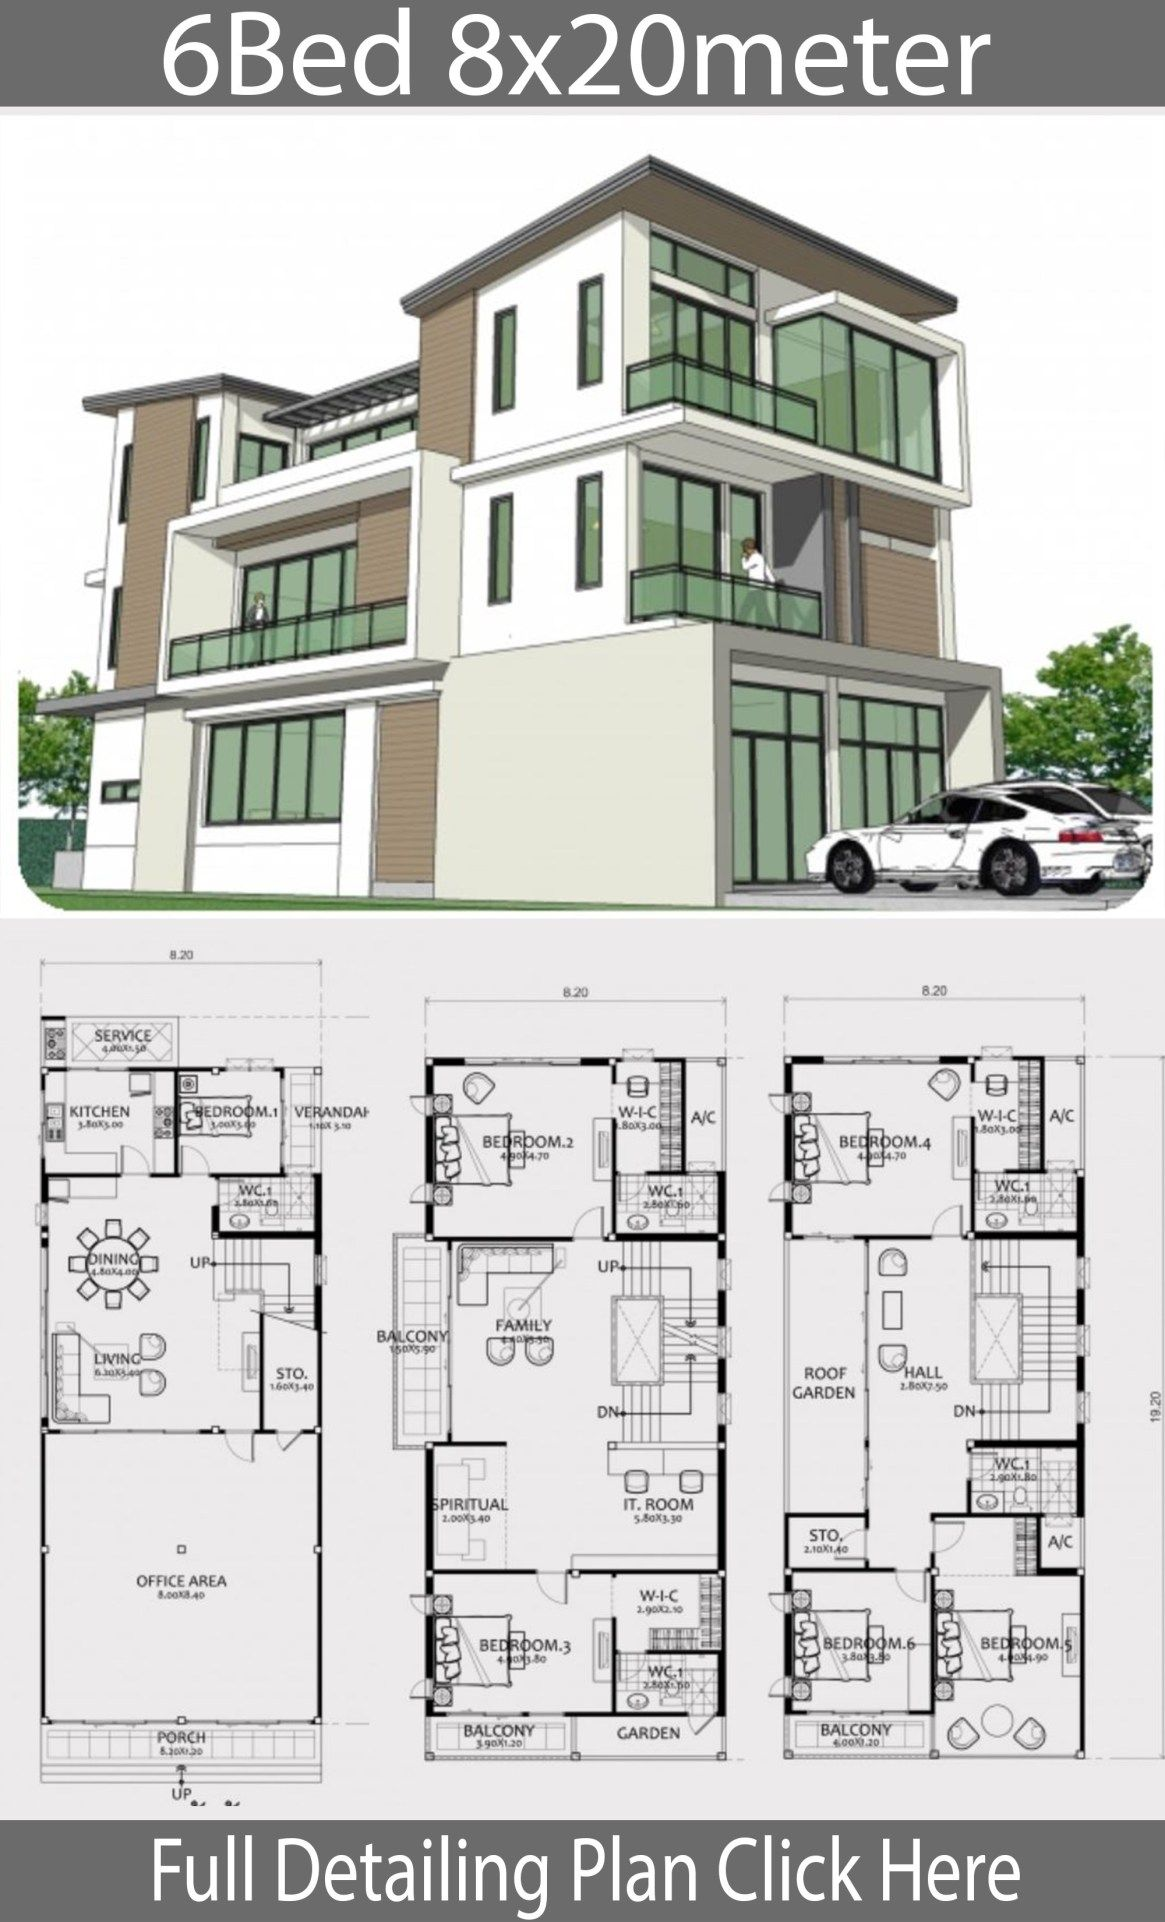 Home Design Plan 8x20m With 6 Bedrooms Home Design With Plansearch Two Story House Design Modern House Plans Modern House Design